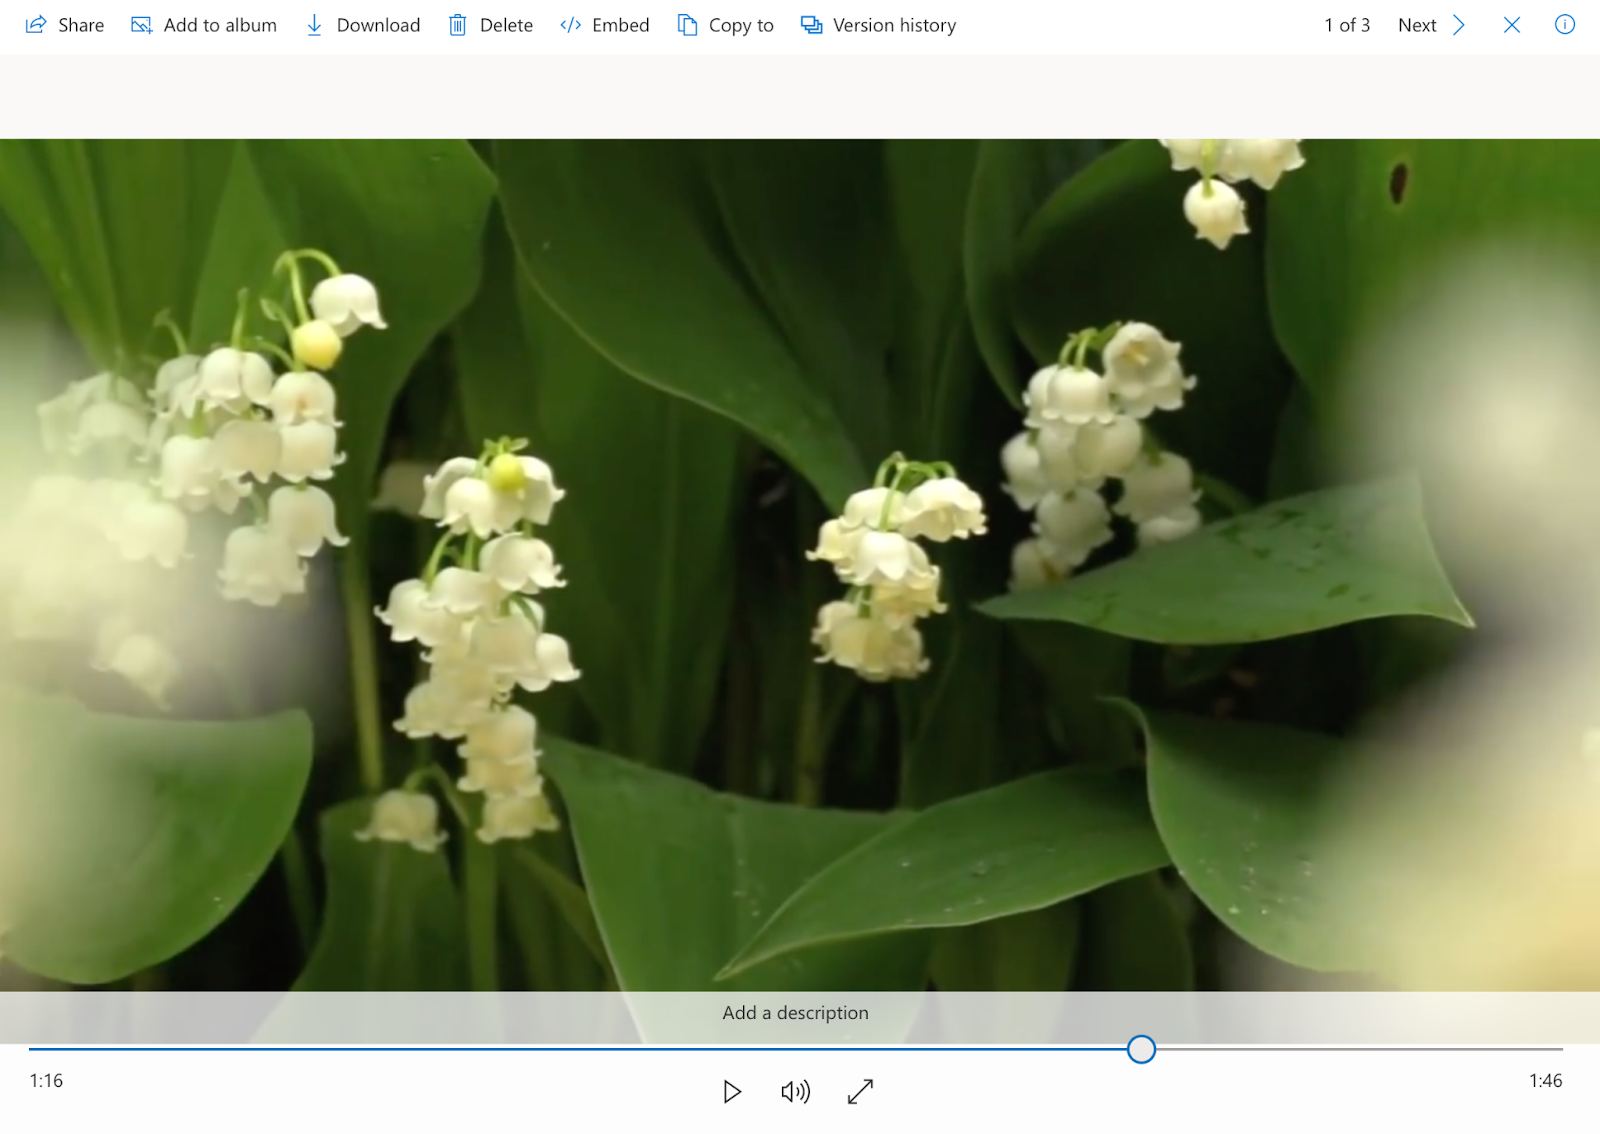 Play the video in OneDrive